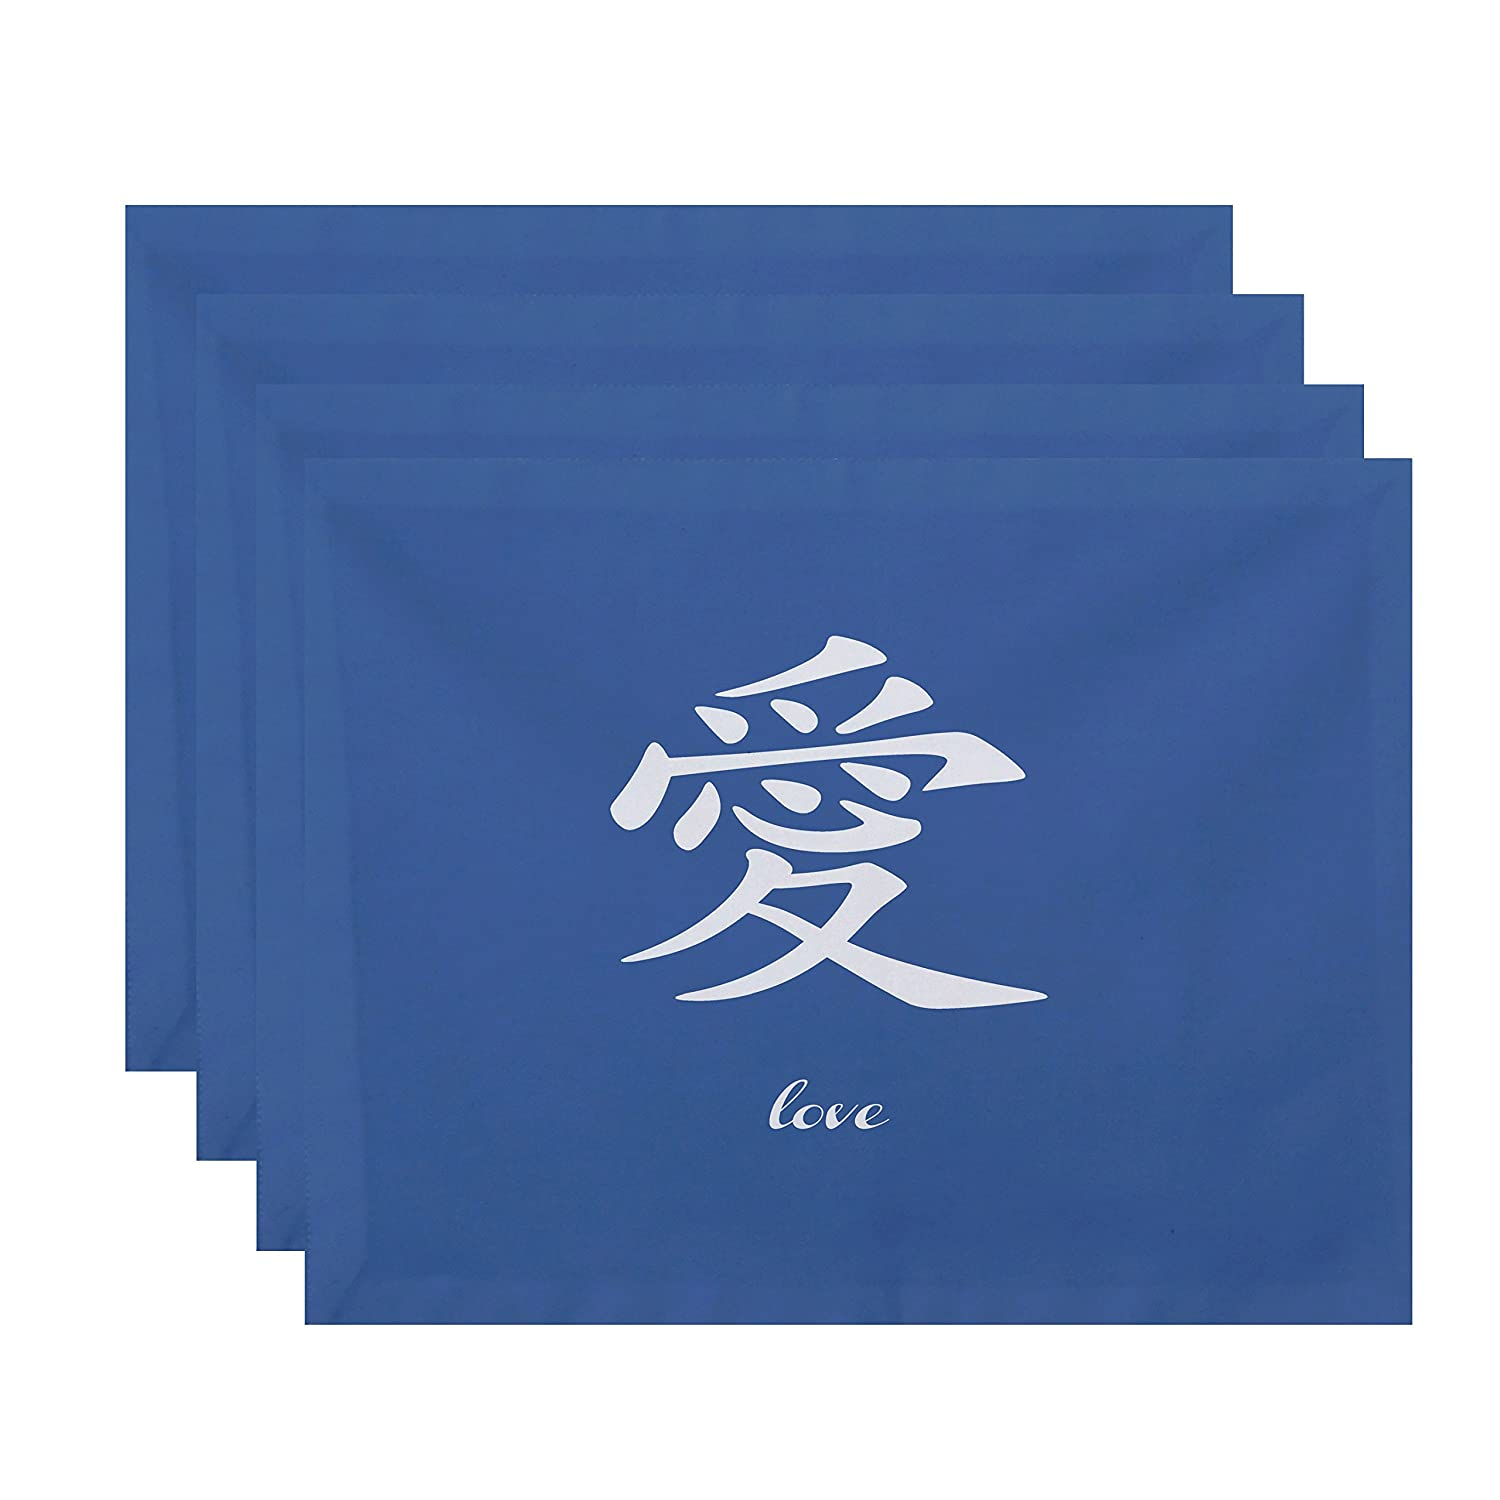 Word Print Placemat Love E by design PT4WN509BL16 18x14-inch Blue